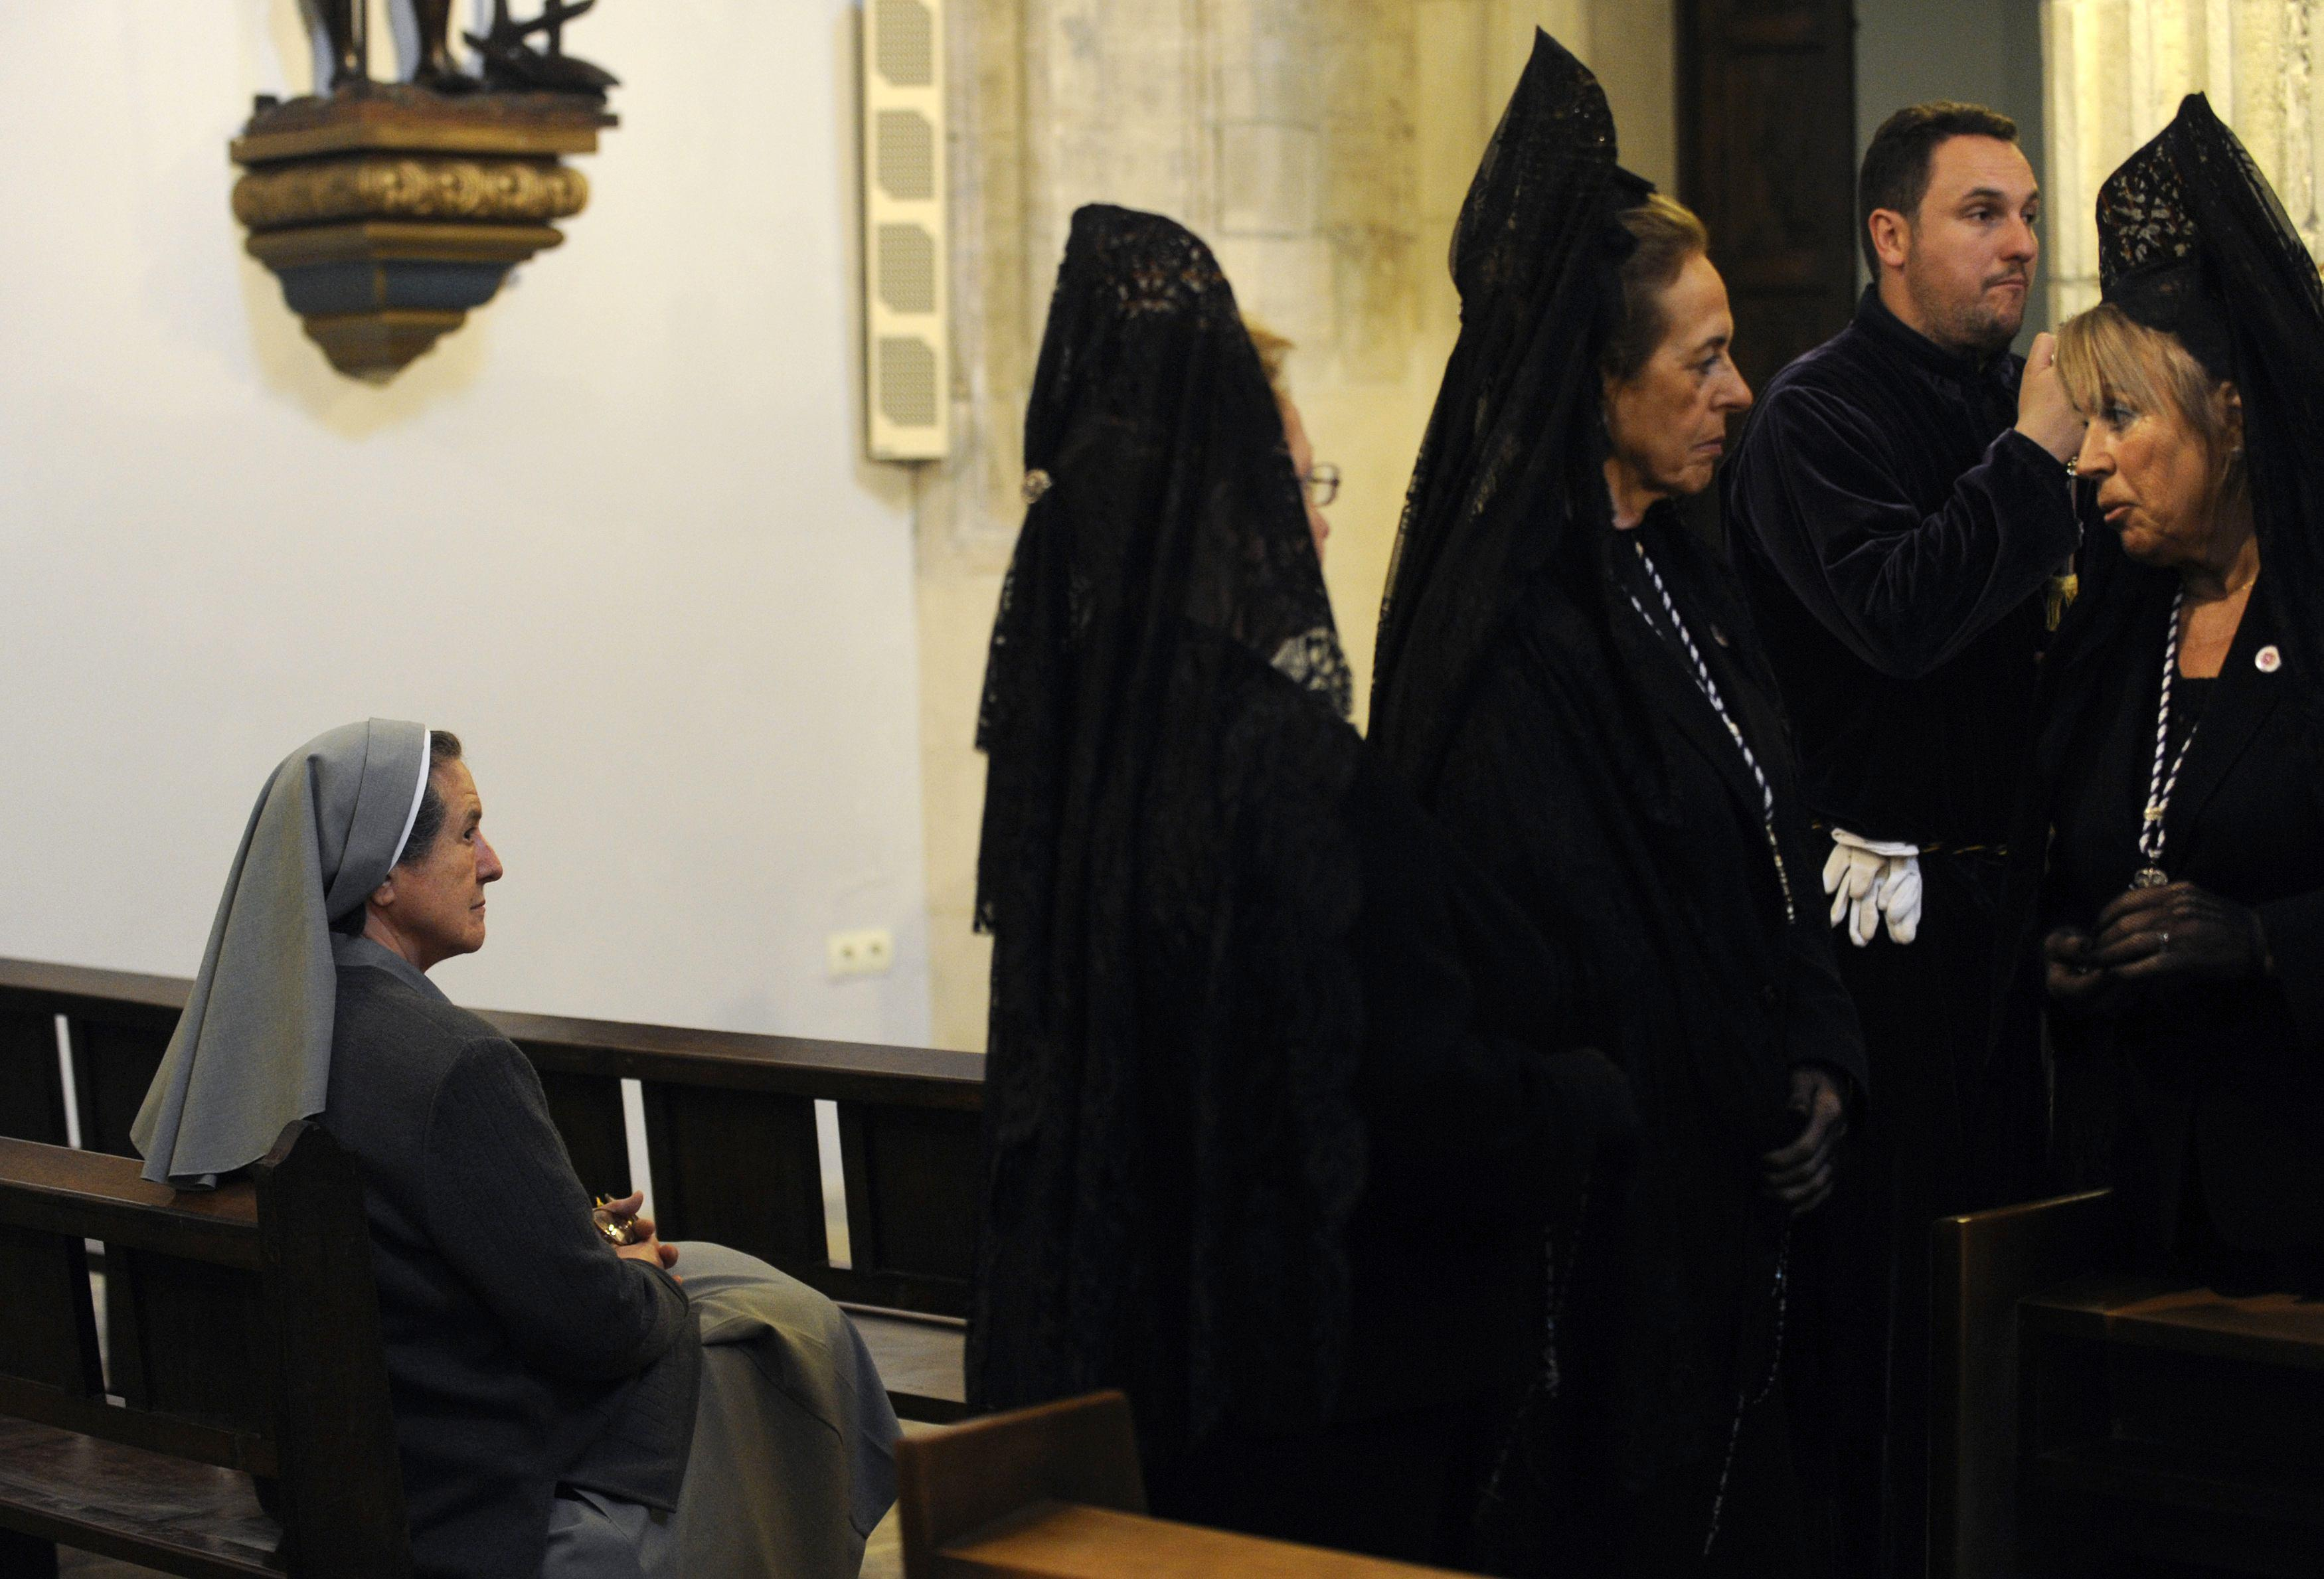 Holy Week - Penitent Nun Spain